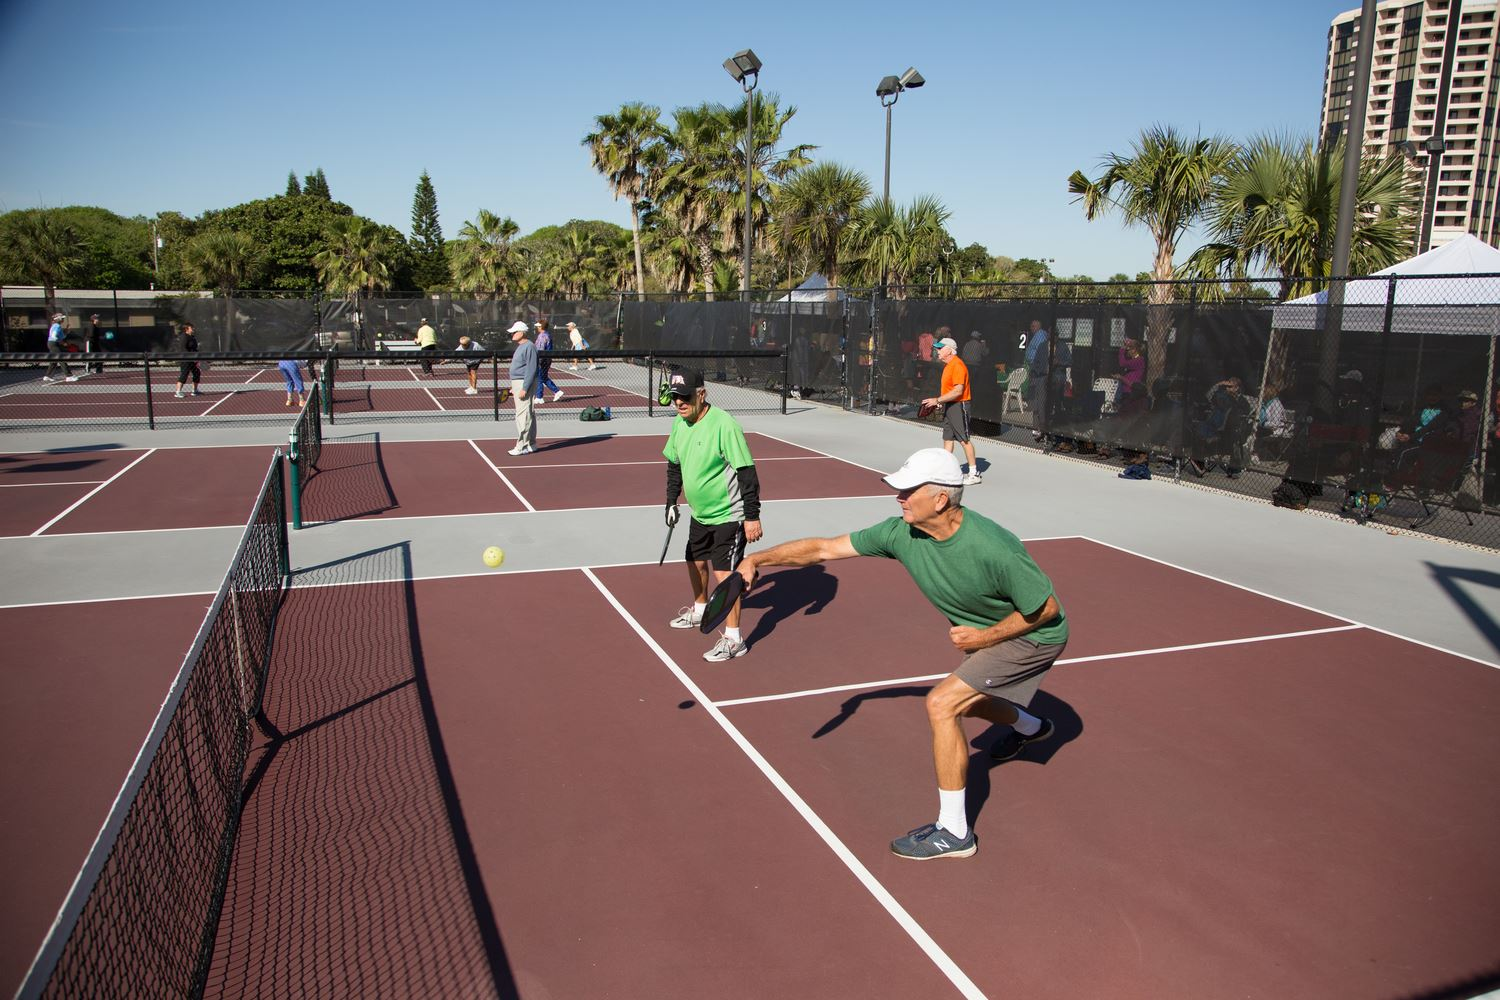 Two Men Playing Pickleball in Green T-Shirts